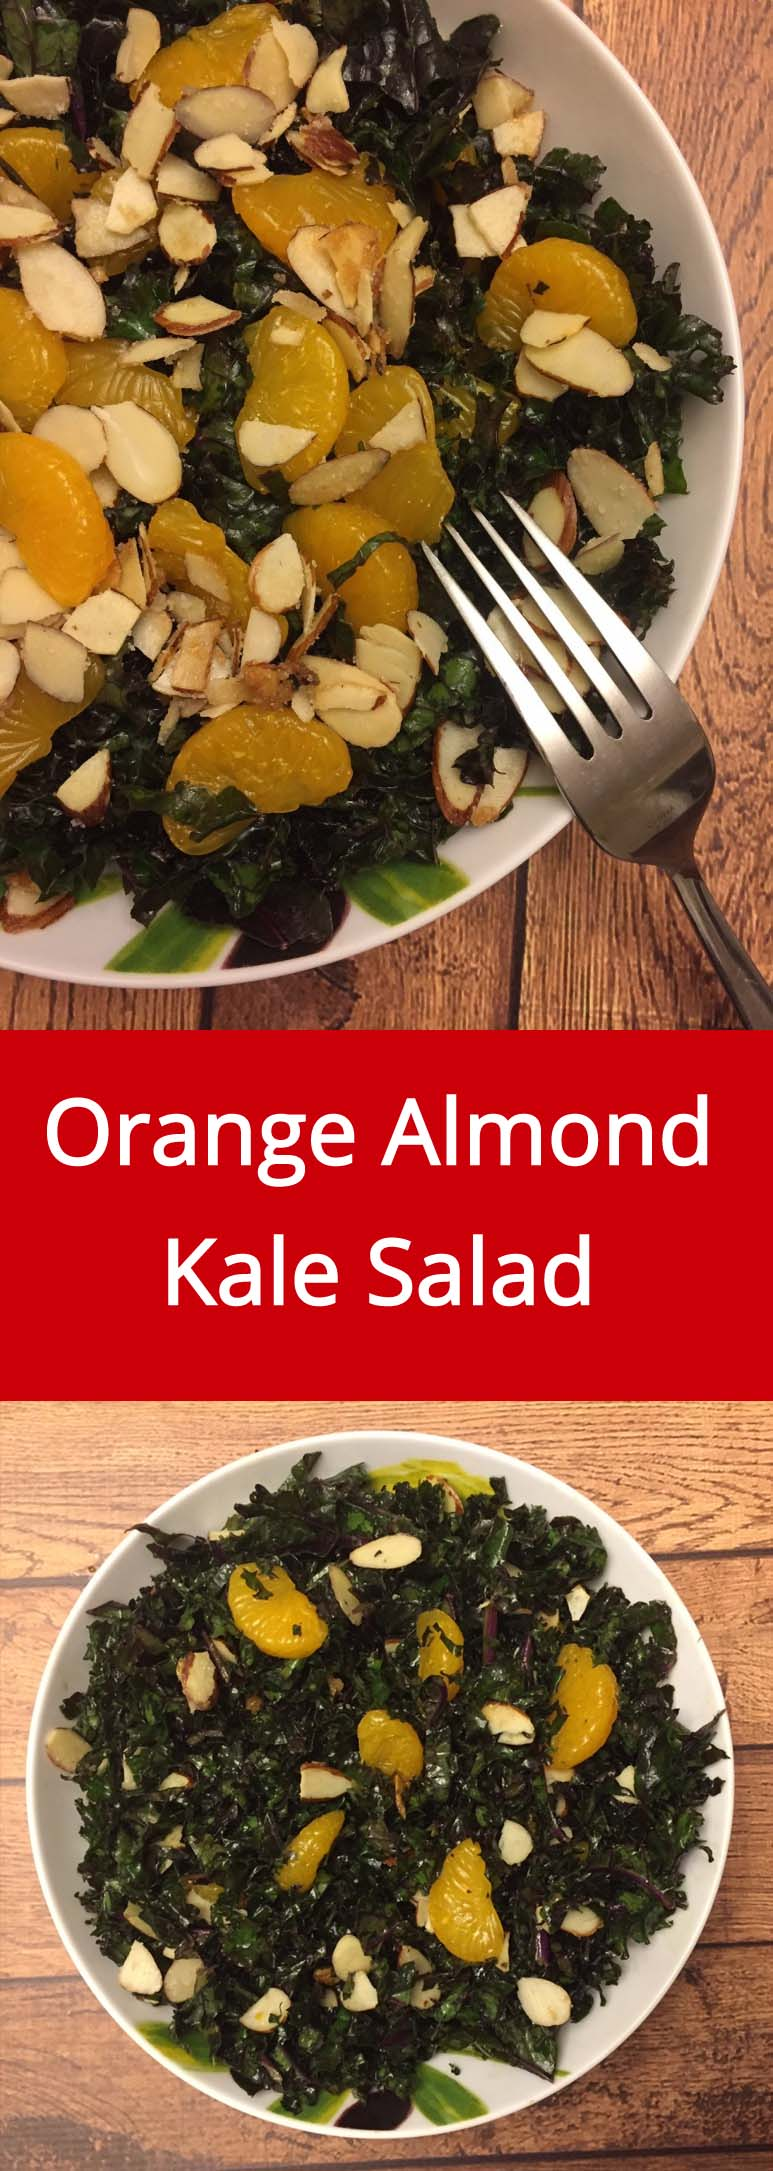 Kale Salad With Oranges And Slivered Almonds - yum! What a great way to eat more kale! | MelanieCooks.com